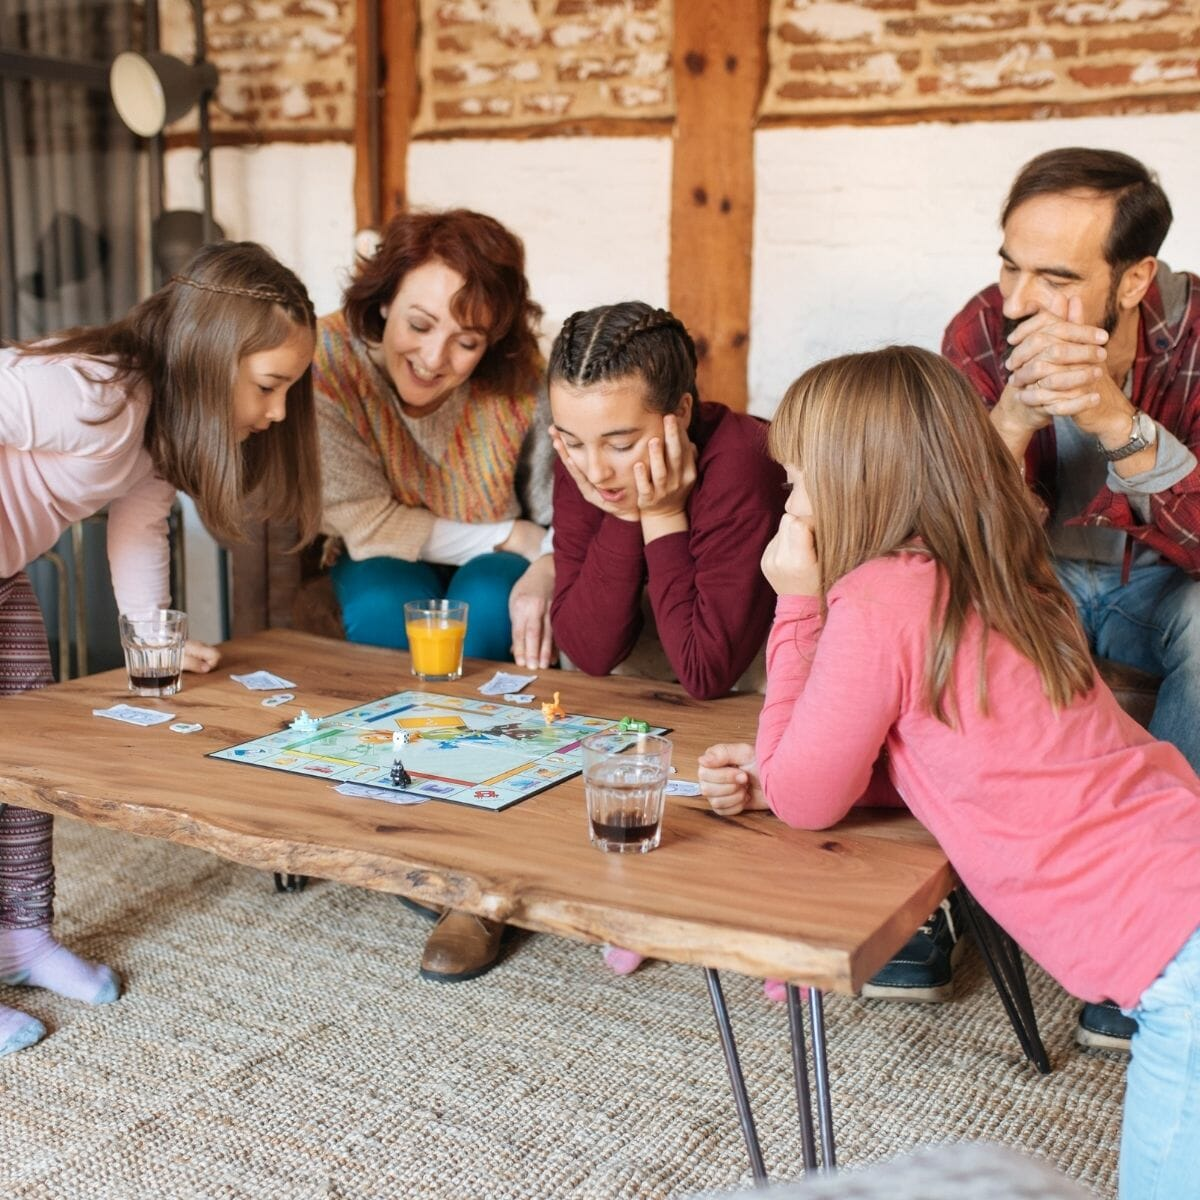 21 Family Bonding Activities to Strengthen Your Family's Connection